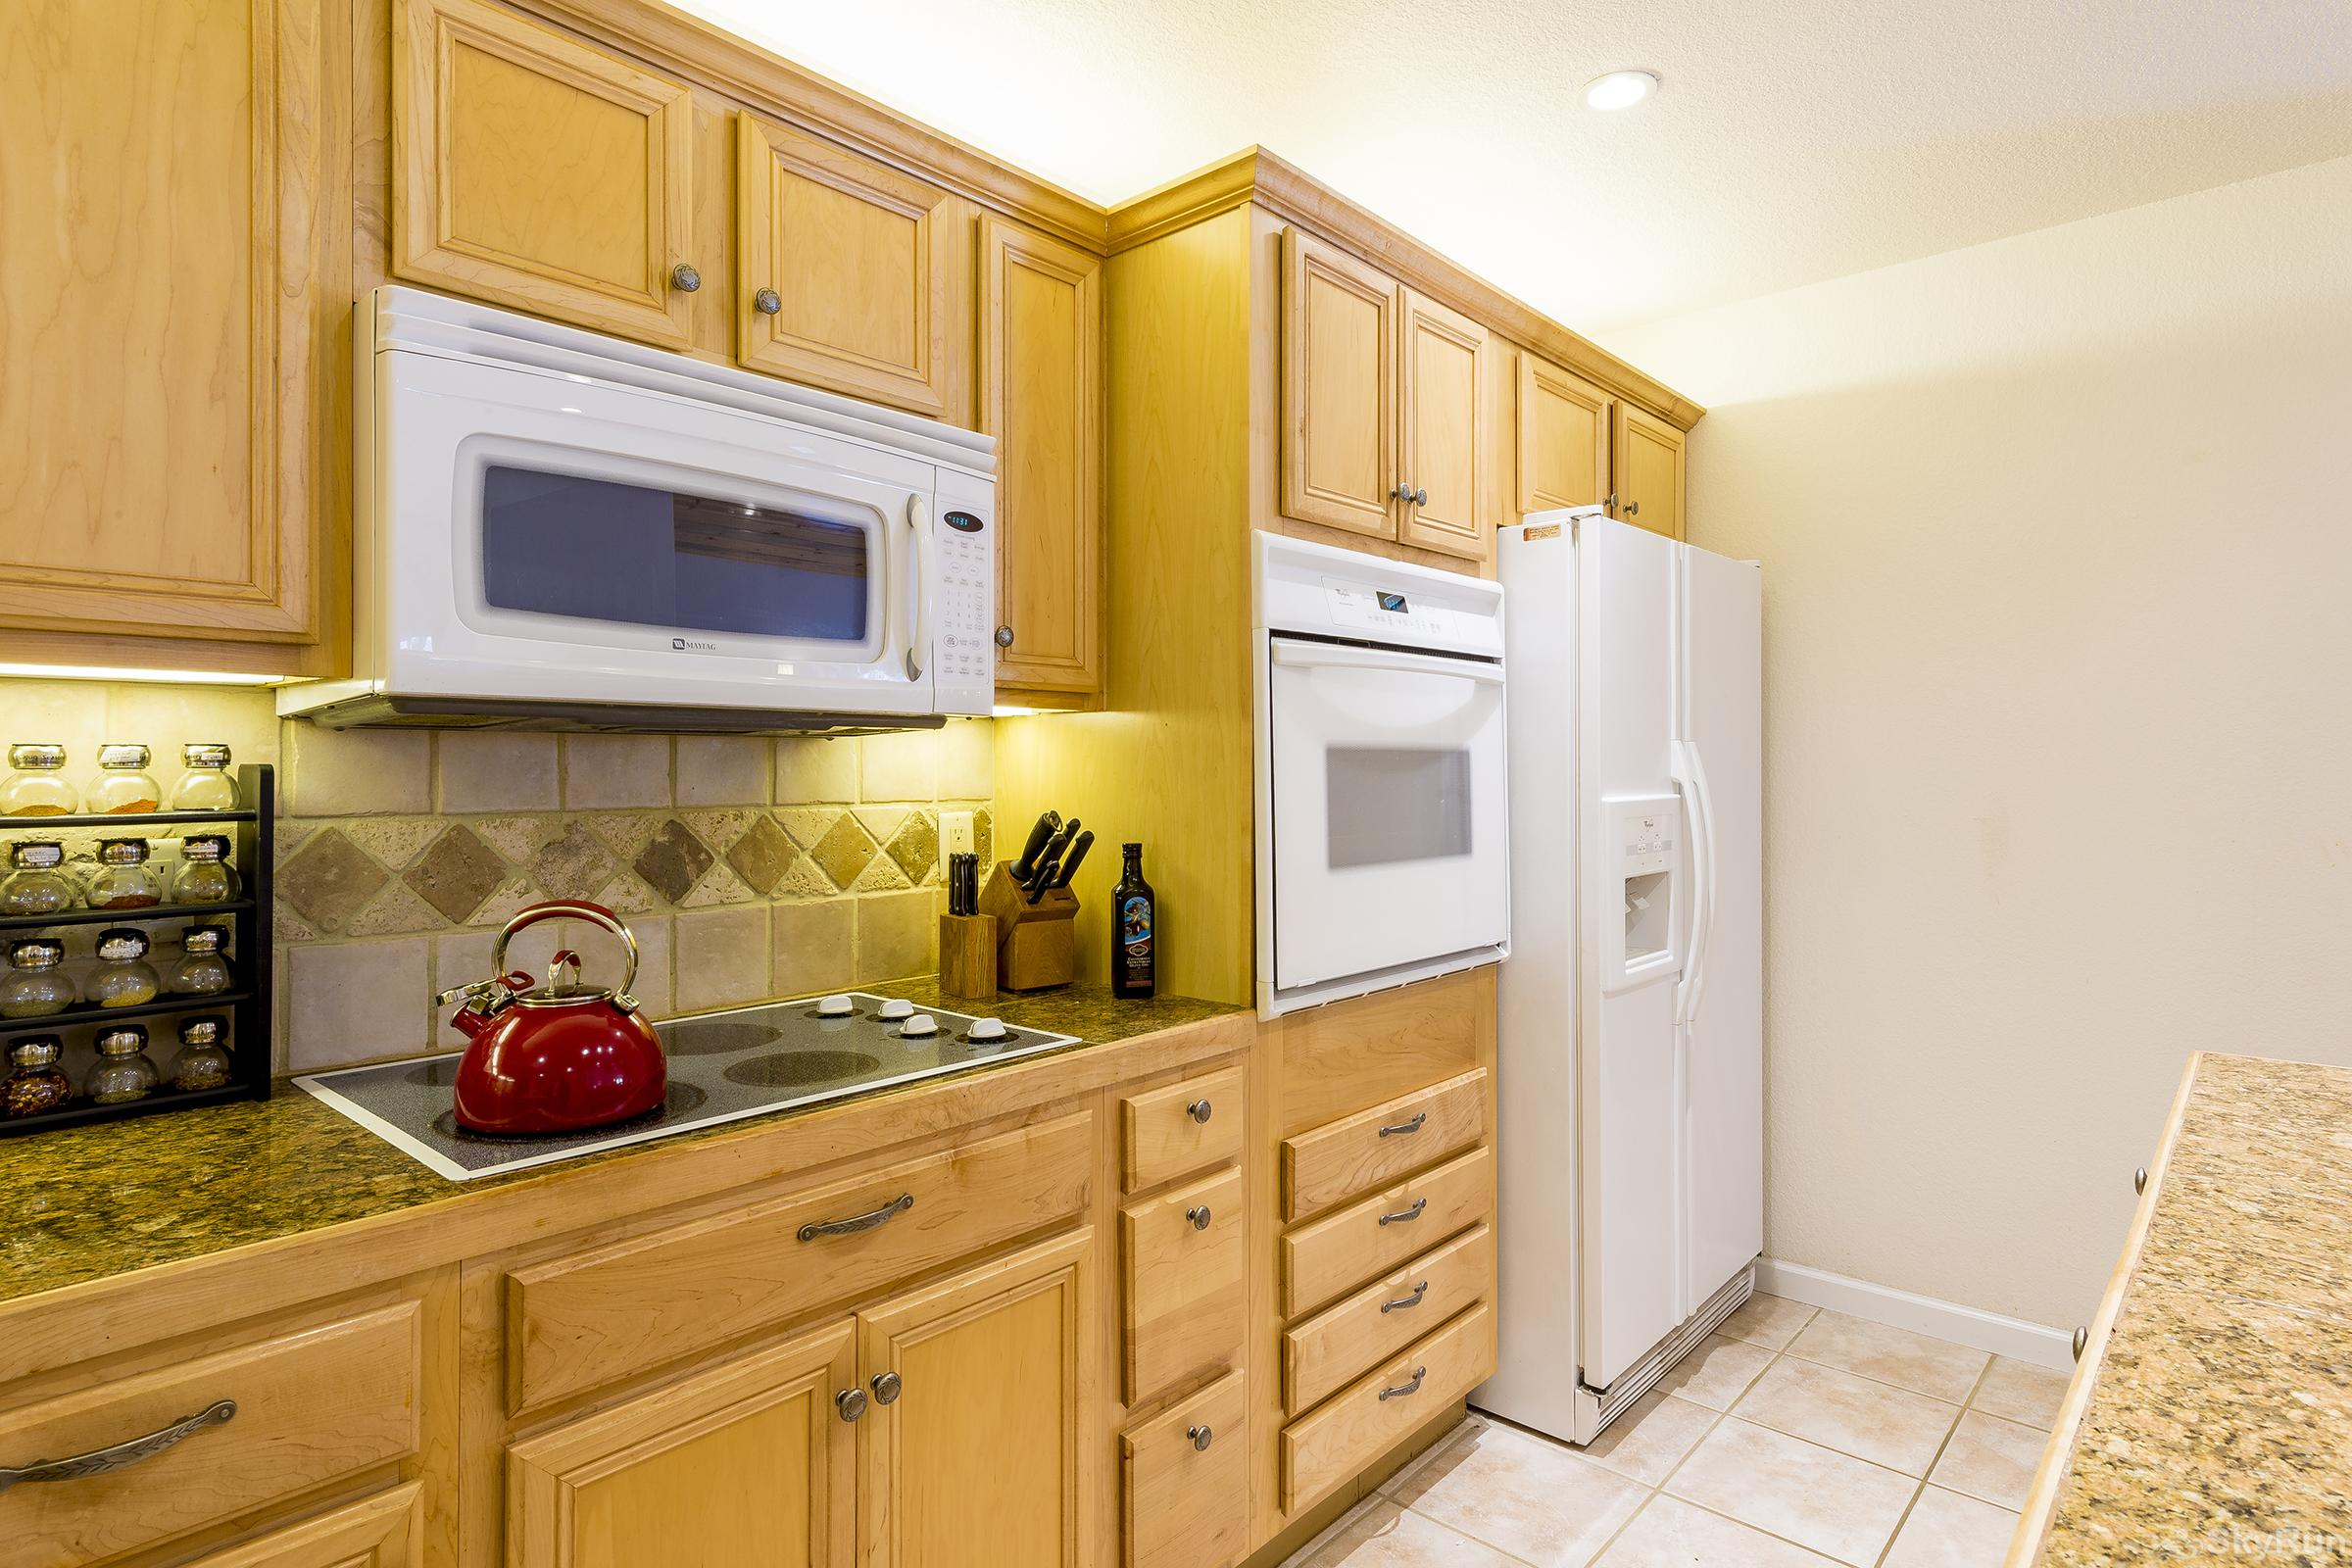 Villas 1450 Nicely stocked kitchen